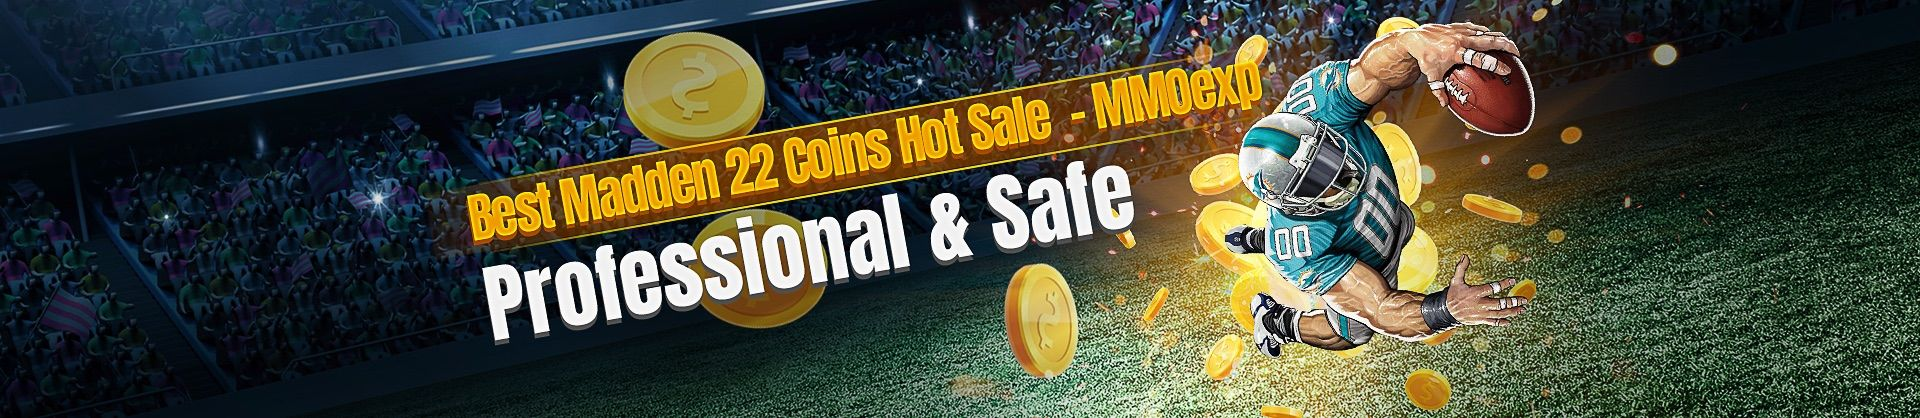 Best Madden 22 Coins Hot Sale - MMOexp